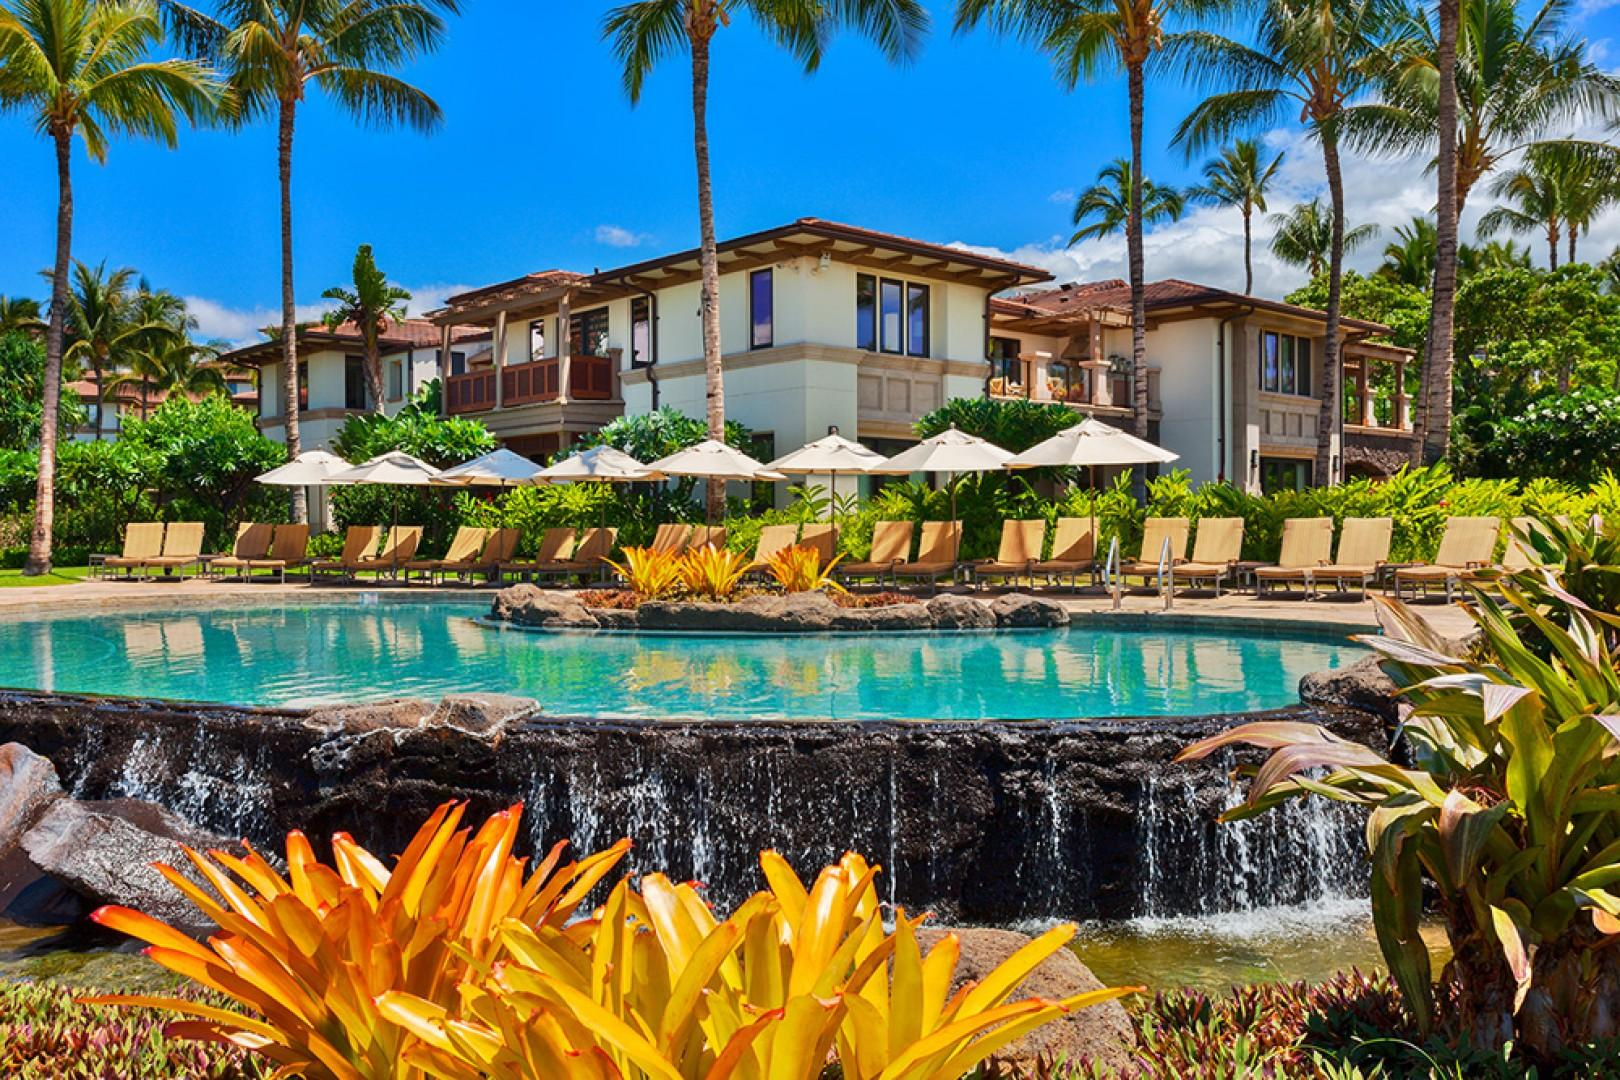 A View Towards A201 in the Upper Center of the BEACHFRONT A Building - Set Directly on Wailea Beach and Overlooking the Beachfront Adults Only Infinity-Edge Heated Swimming Pool and Hot Tub Spa